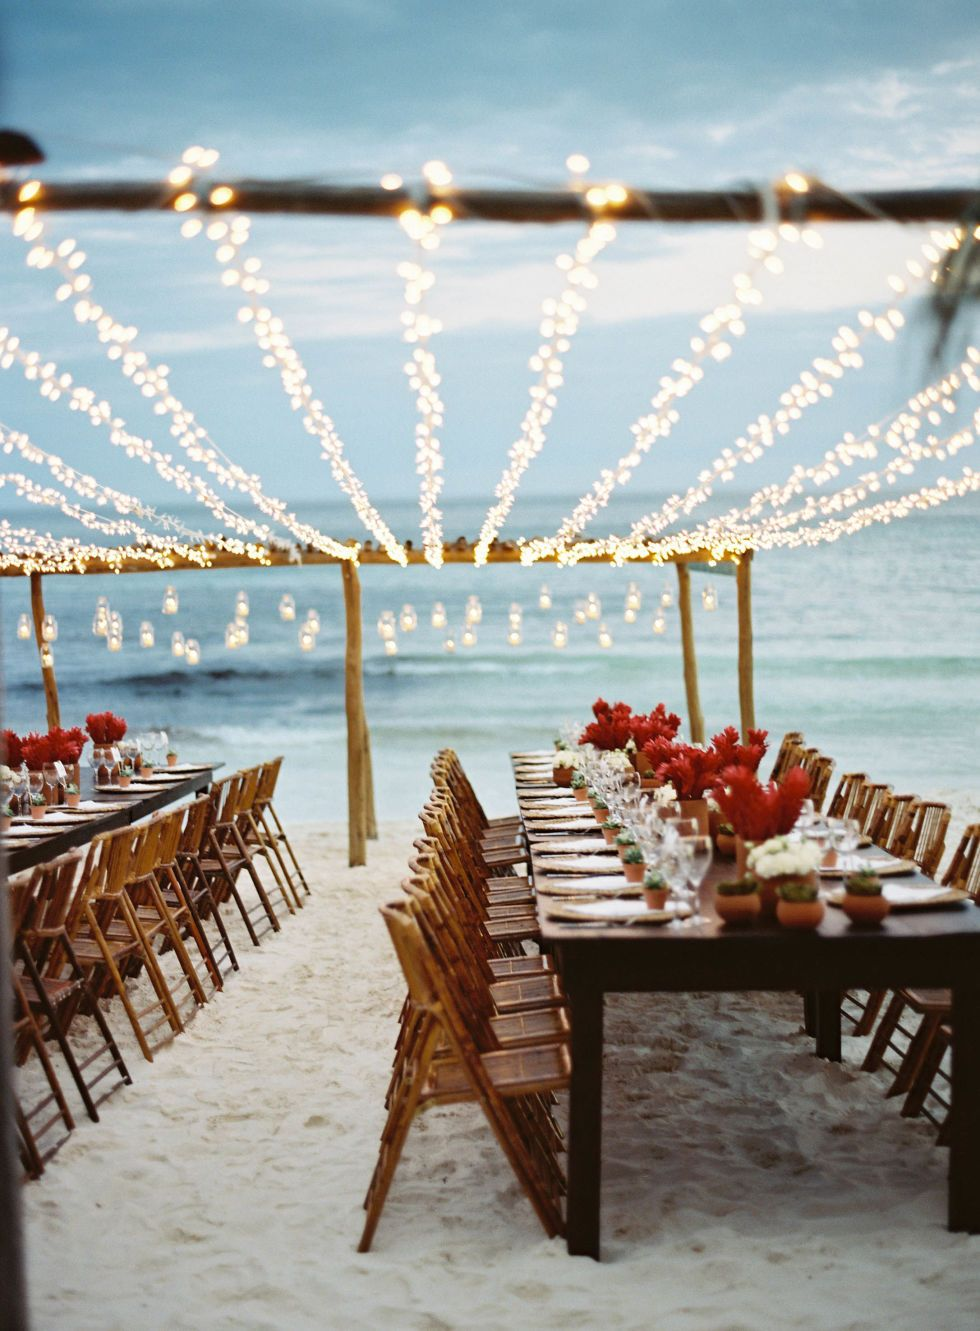 Wedding colors for a beach wedding  The Most Idyllic Beach Wedding  Tiki lights White christmas lights